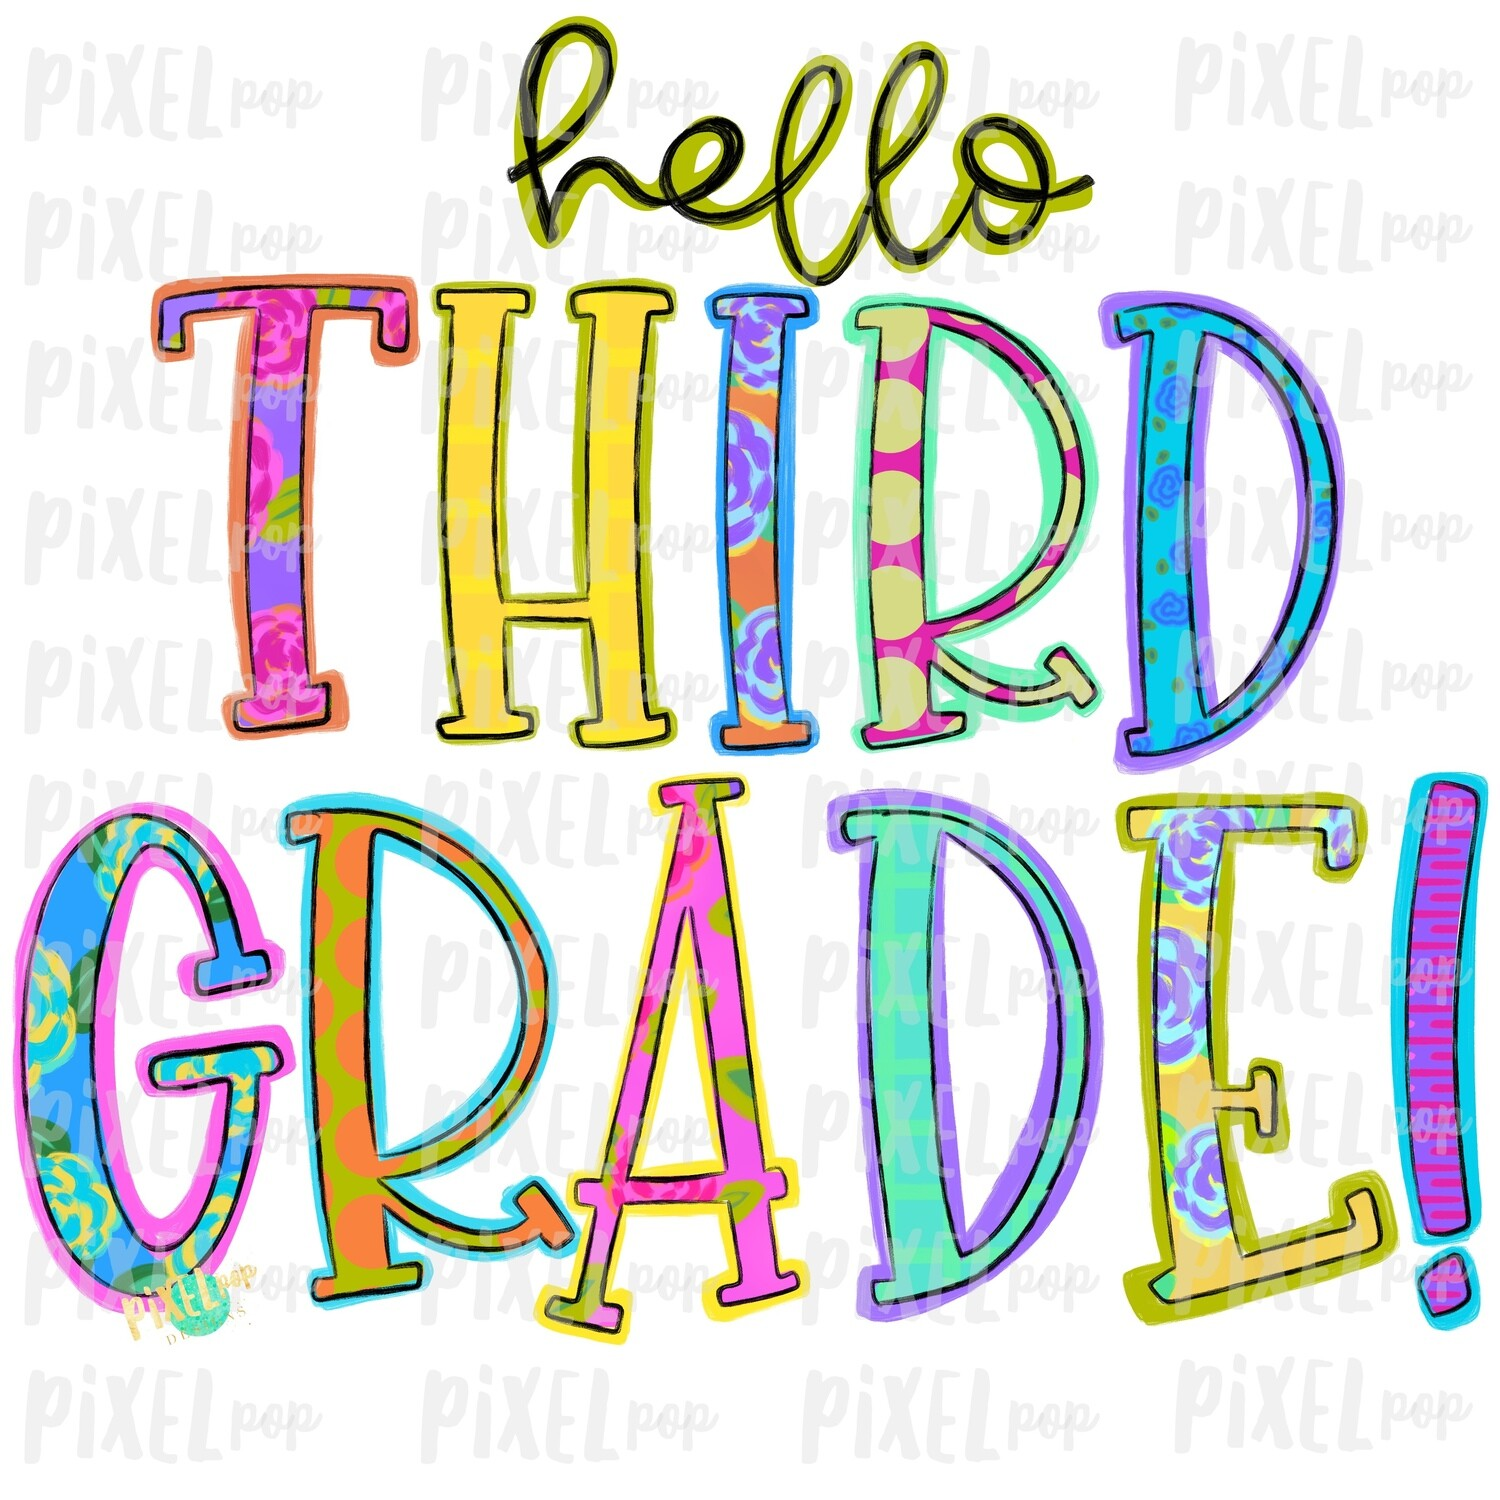 Hello Third Grade Bright PNG Design | School Design | Sublimation | Digital Art | Hand Painted | Digital Download | Printable Artwork | Art